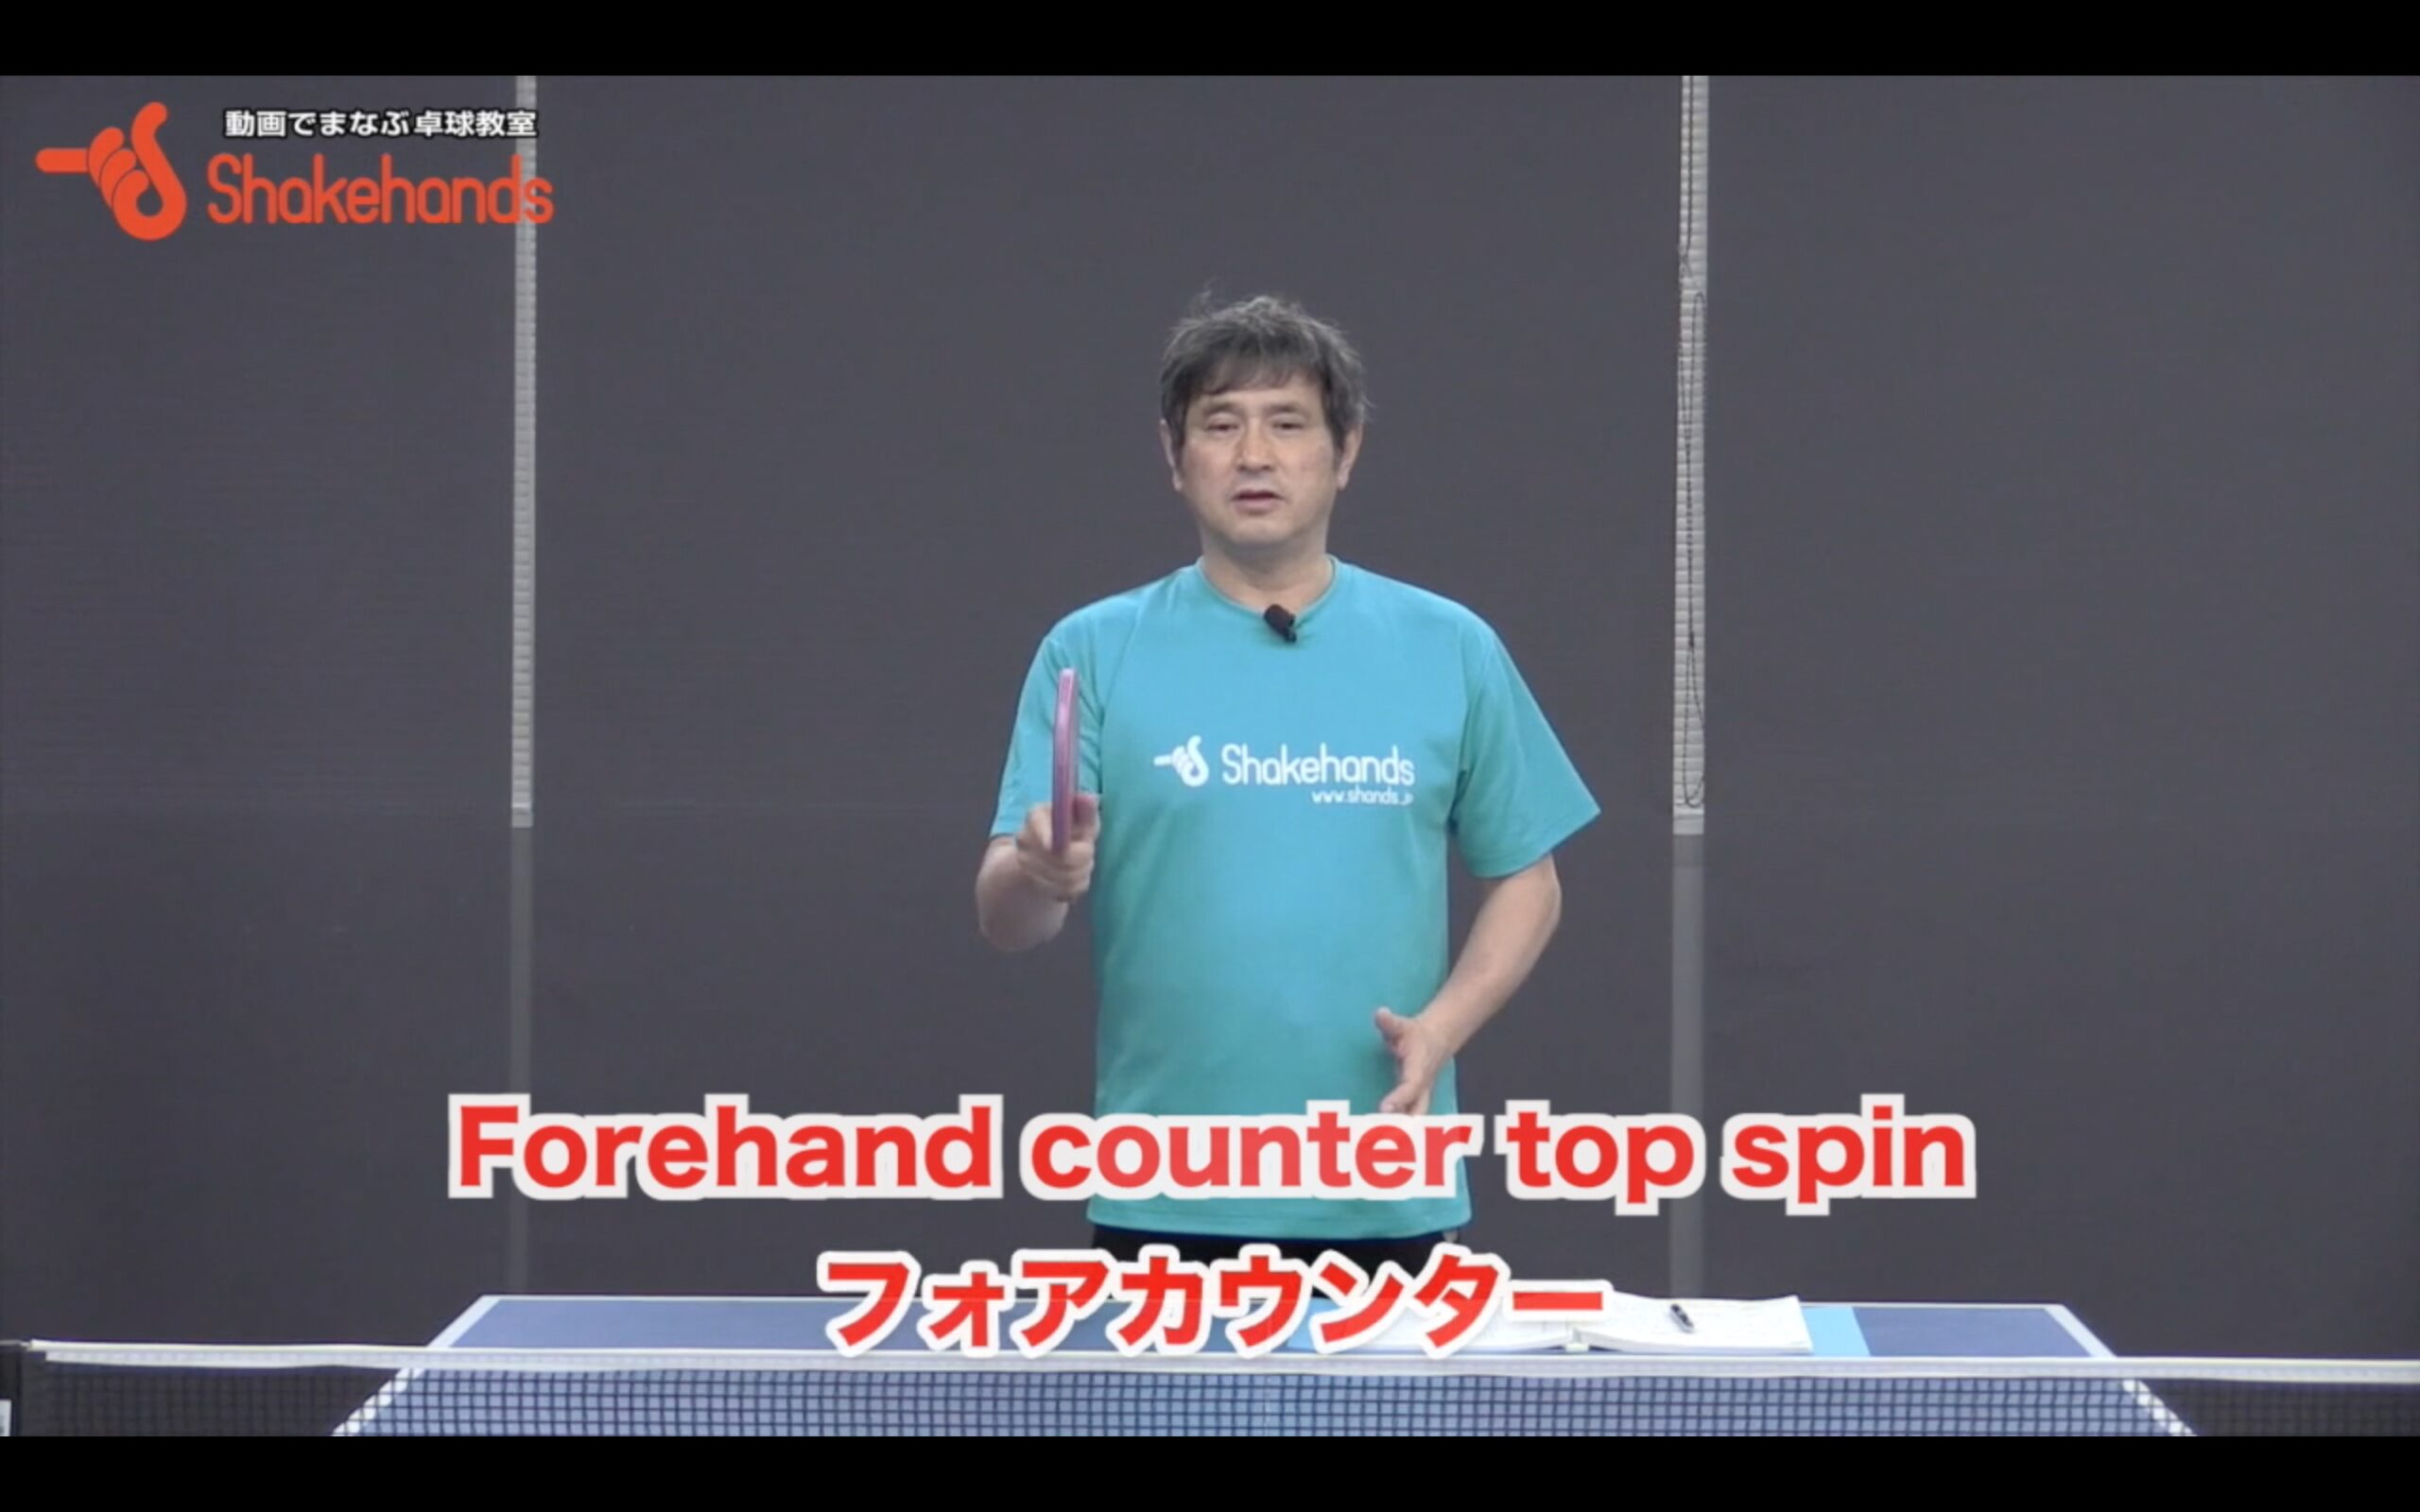 Forehand counter